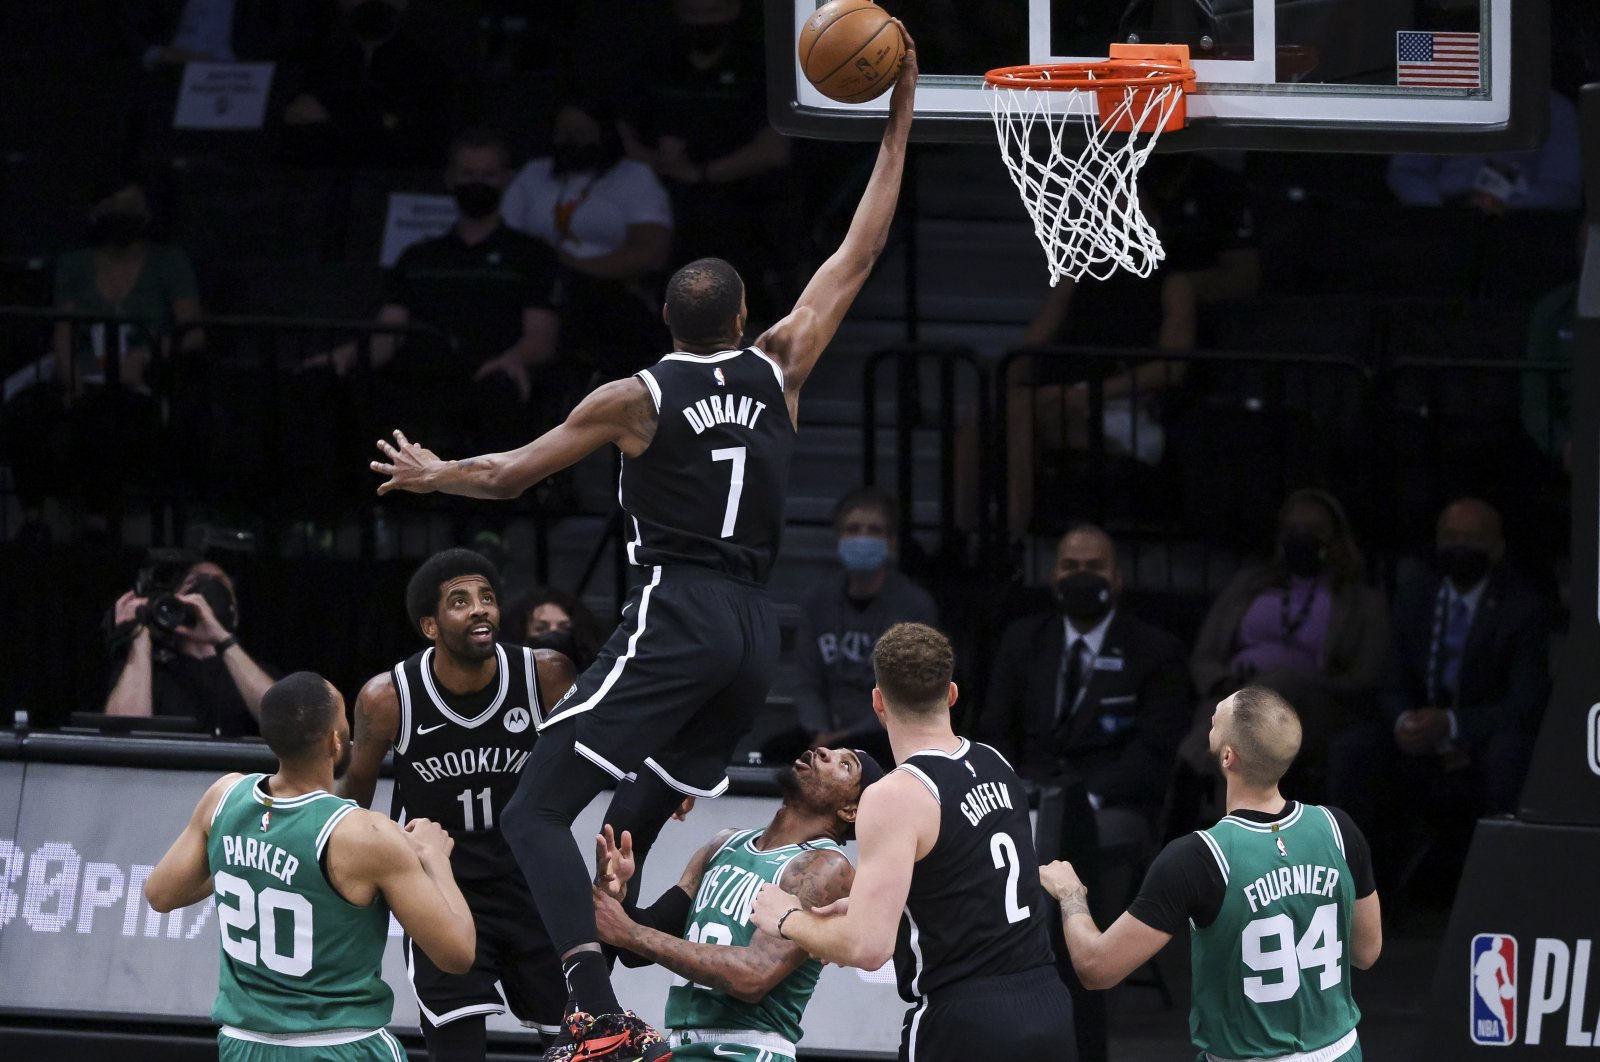 Boston Celtics guard Marcus Smart (3rd R) draws an offensive foul as the Brooklyn Nets forward Kevin Durant (C) drives to the basket during an NBA playoffs game at the Barclays Center in Brooklyn, New York, U.S., May 22, 2021. (EPA Photo)